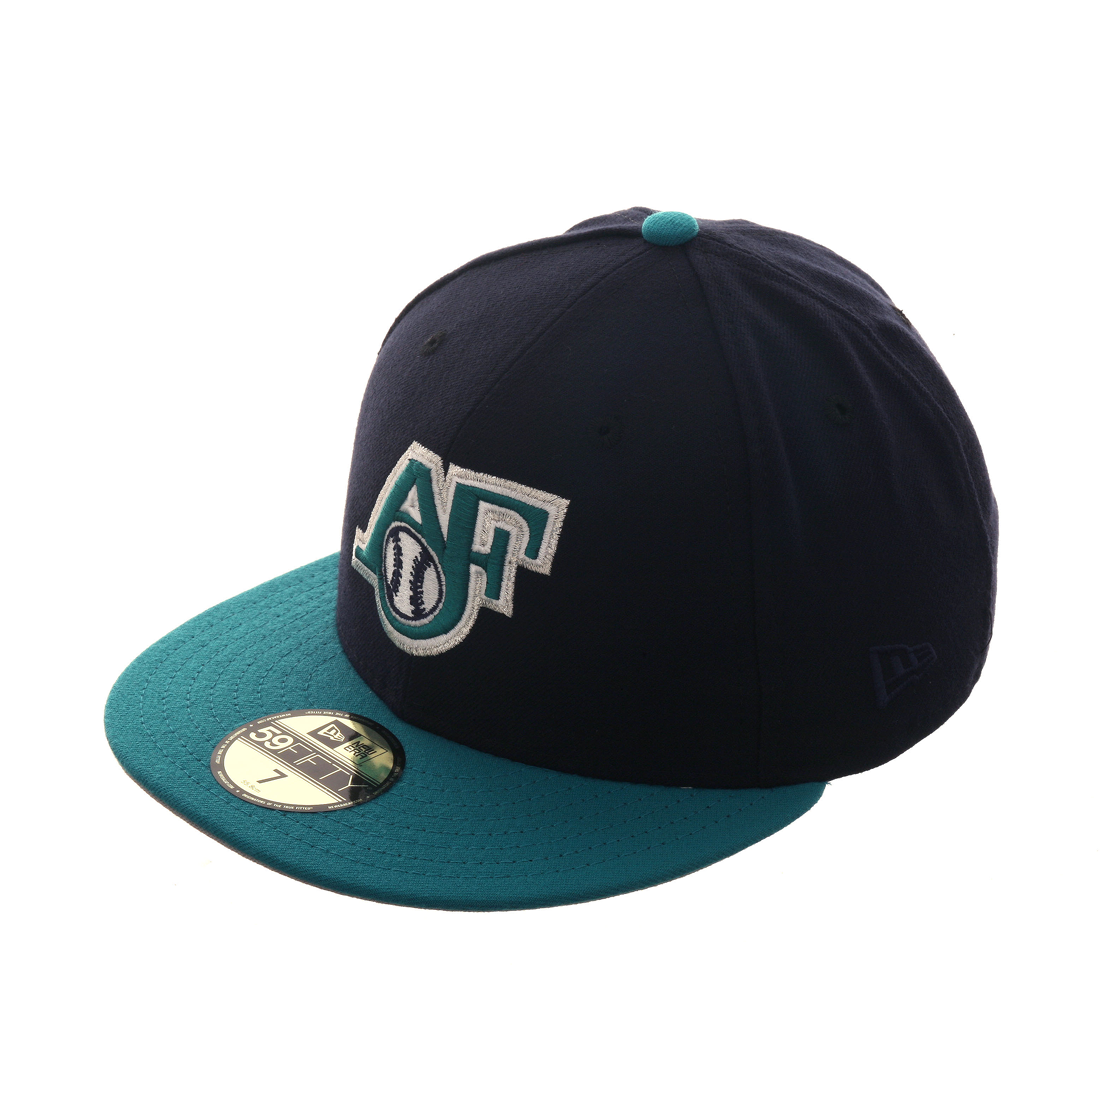 Exclusive New Era 59Fifty Appleton Foxes Hat - 2T Navy, Teal